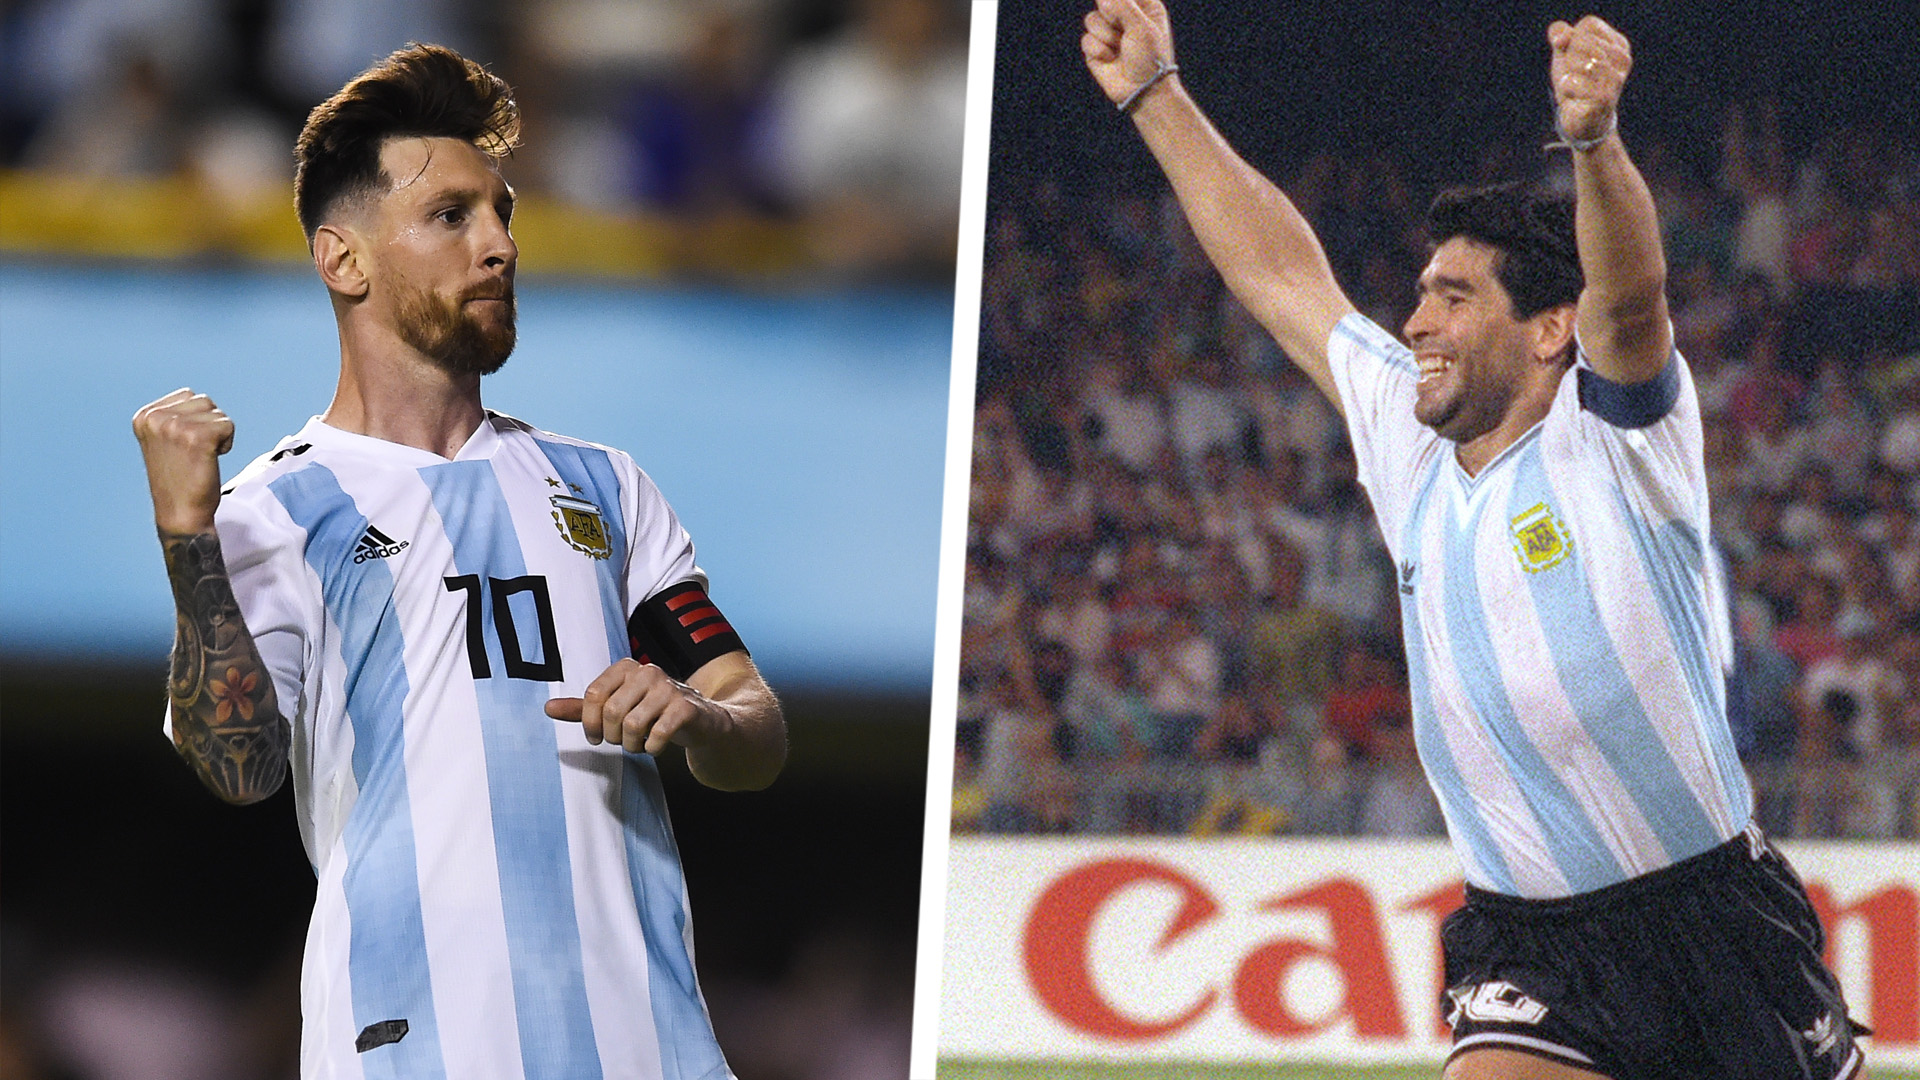 'Messi only has one skill!' - Pele places himself & Maradona above Barcelona star